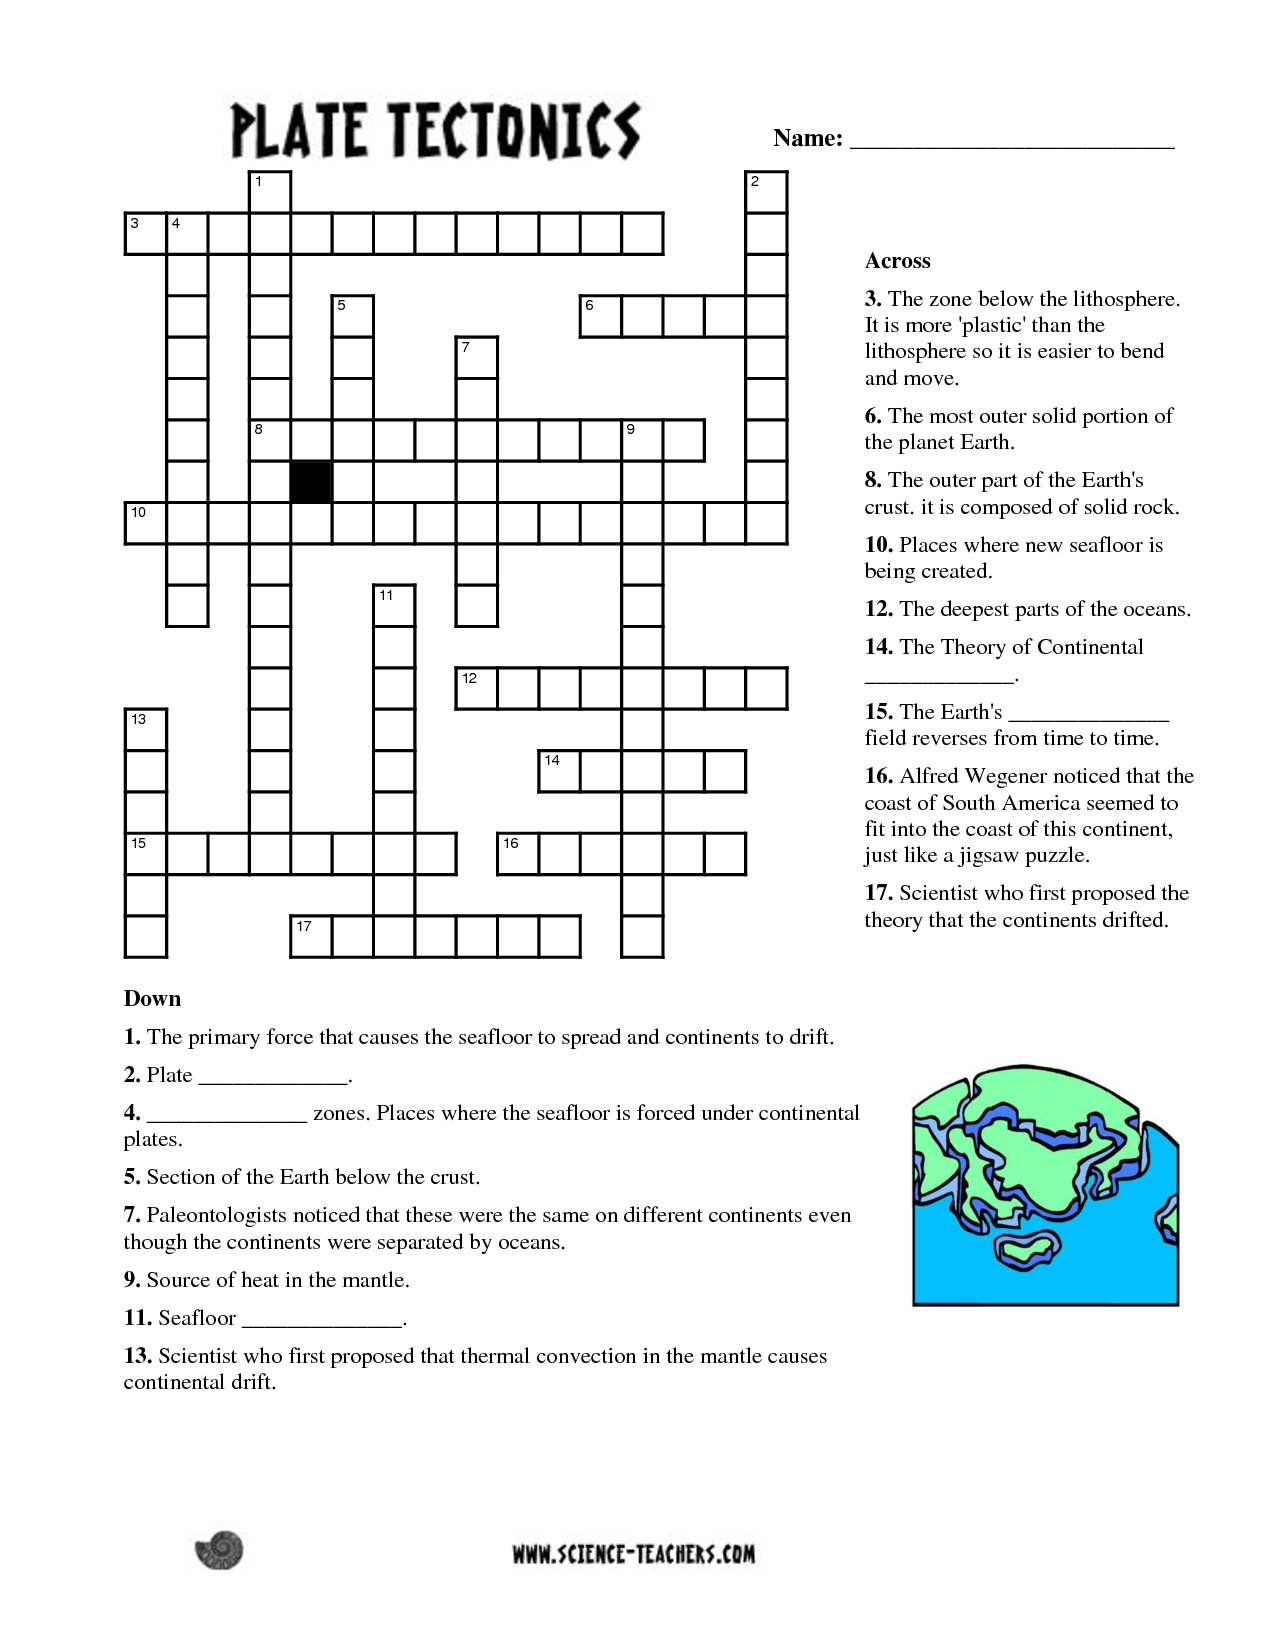 small resolution of Planets Crossword Puzzle Worksheet   Printable crossword puzzles